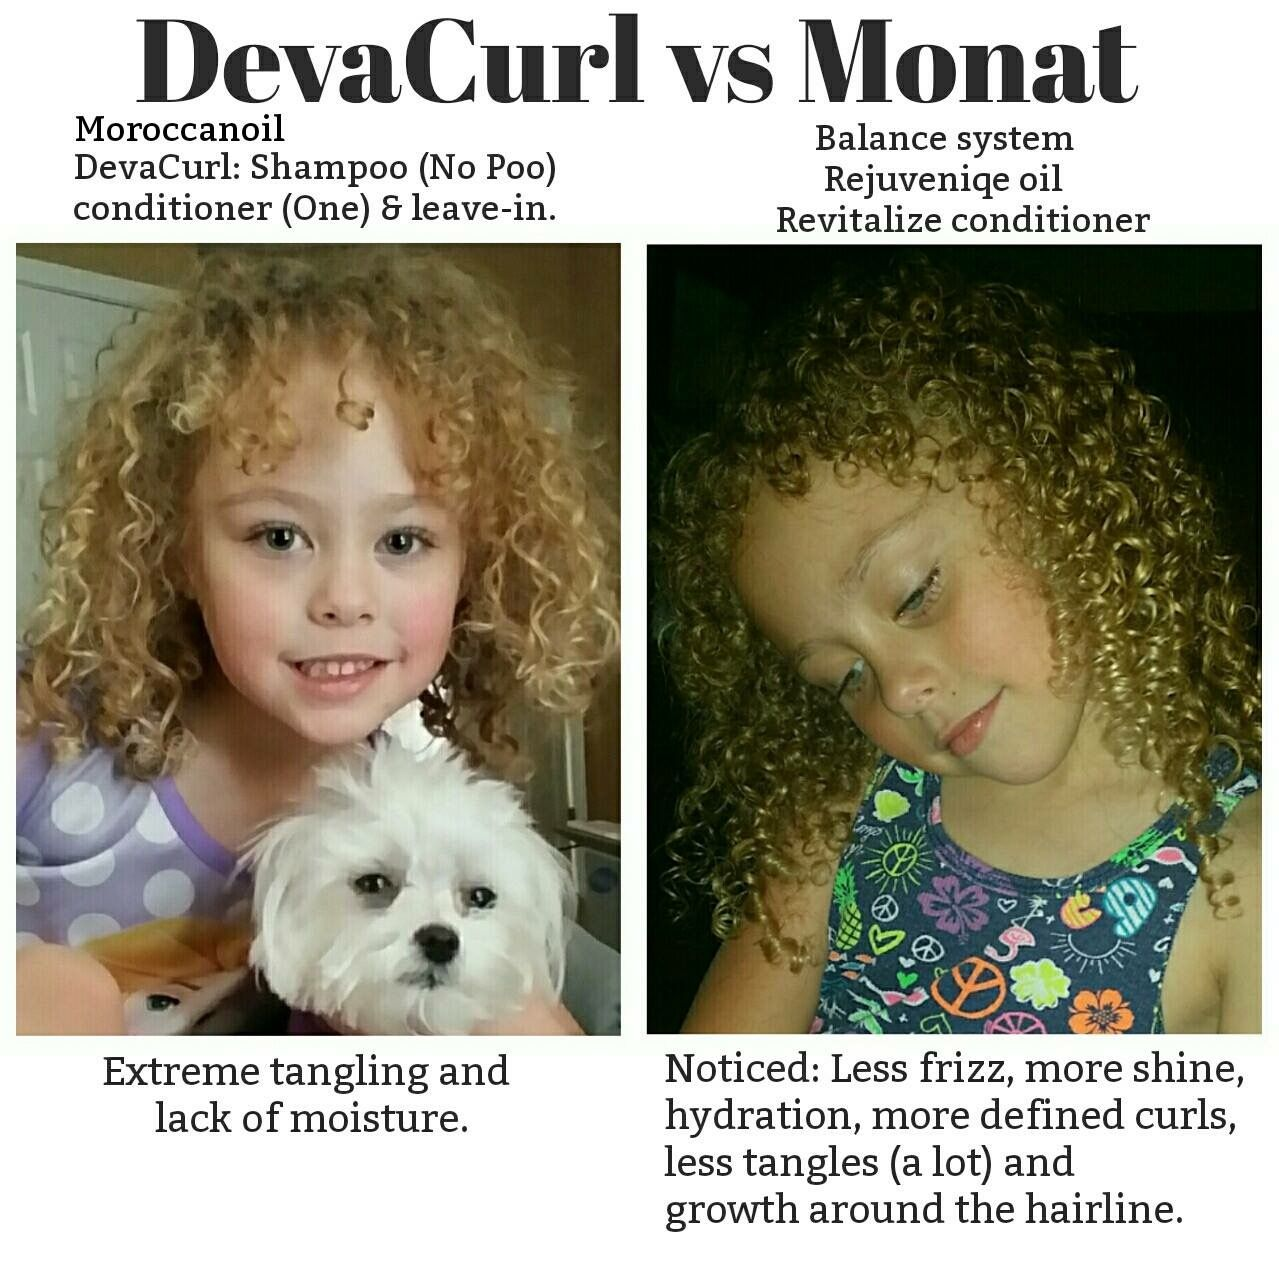 Monat before and after rejuveniqe oil non toxic hair care